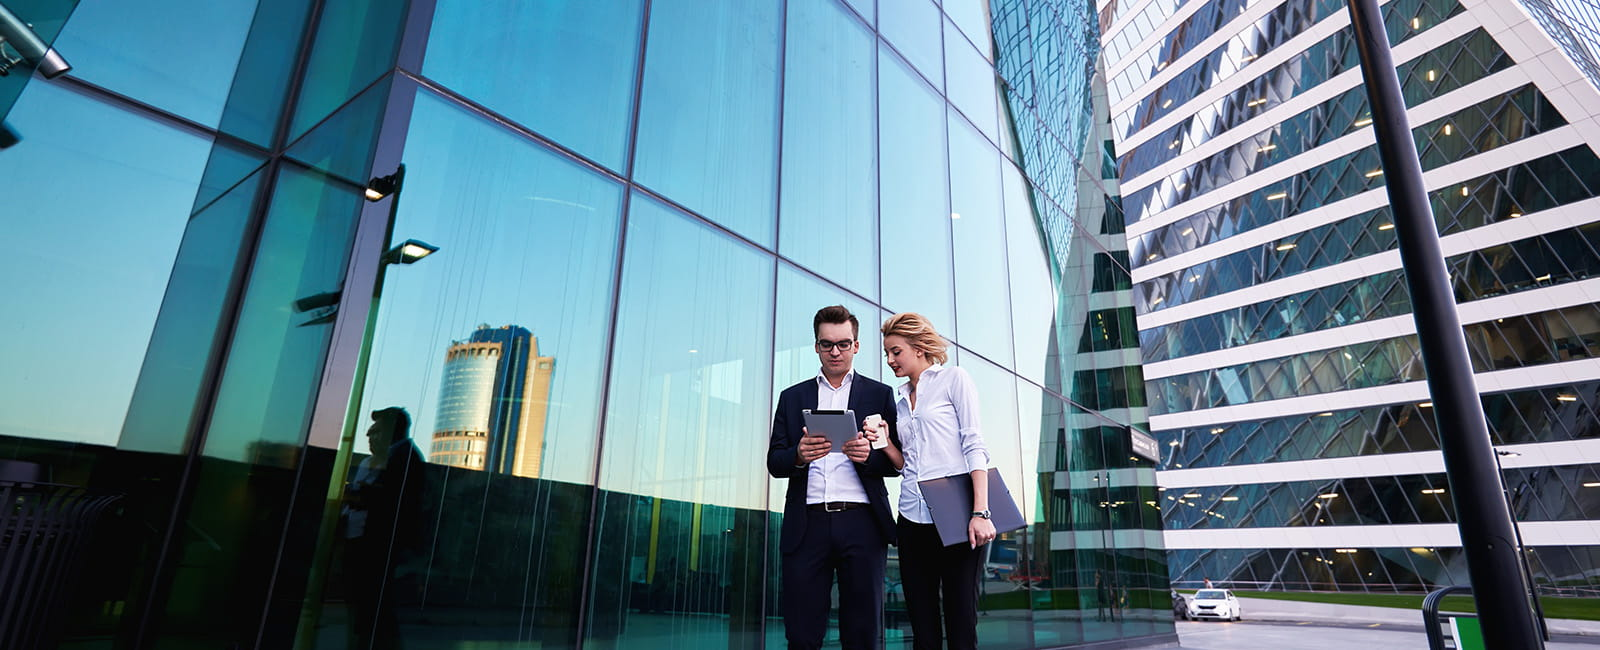 Wide shot of man and woman outside building looking at tablet